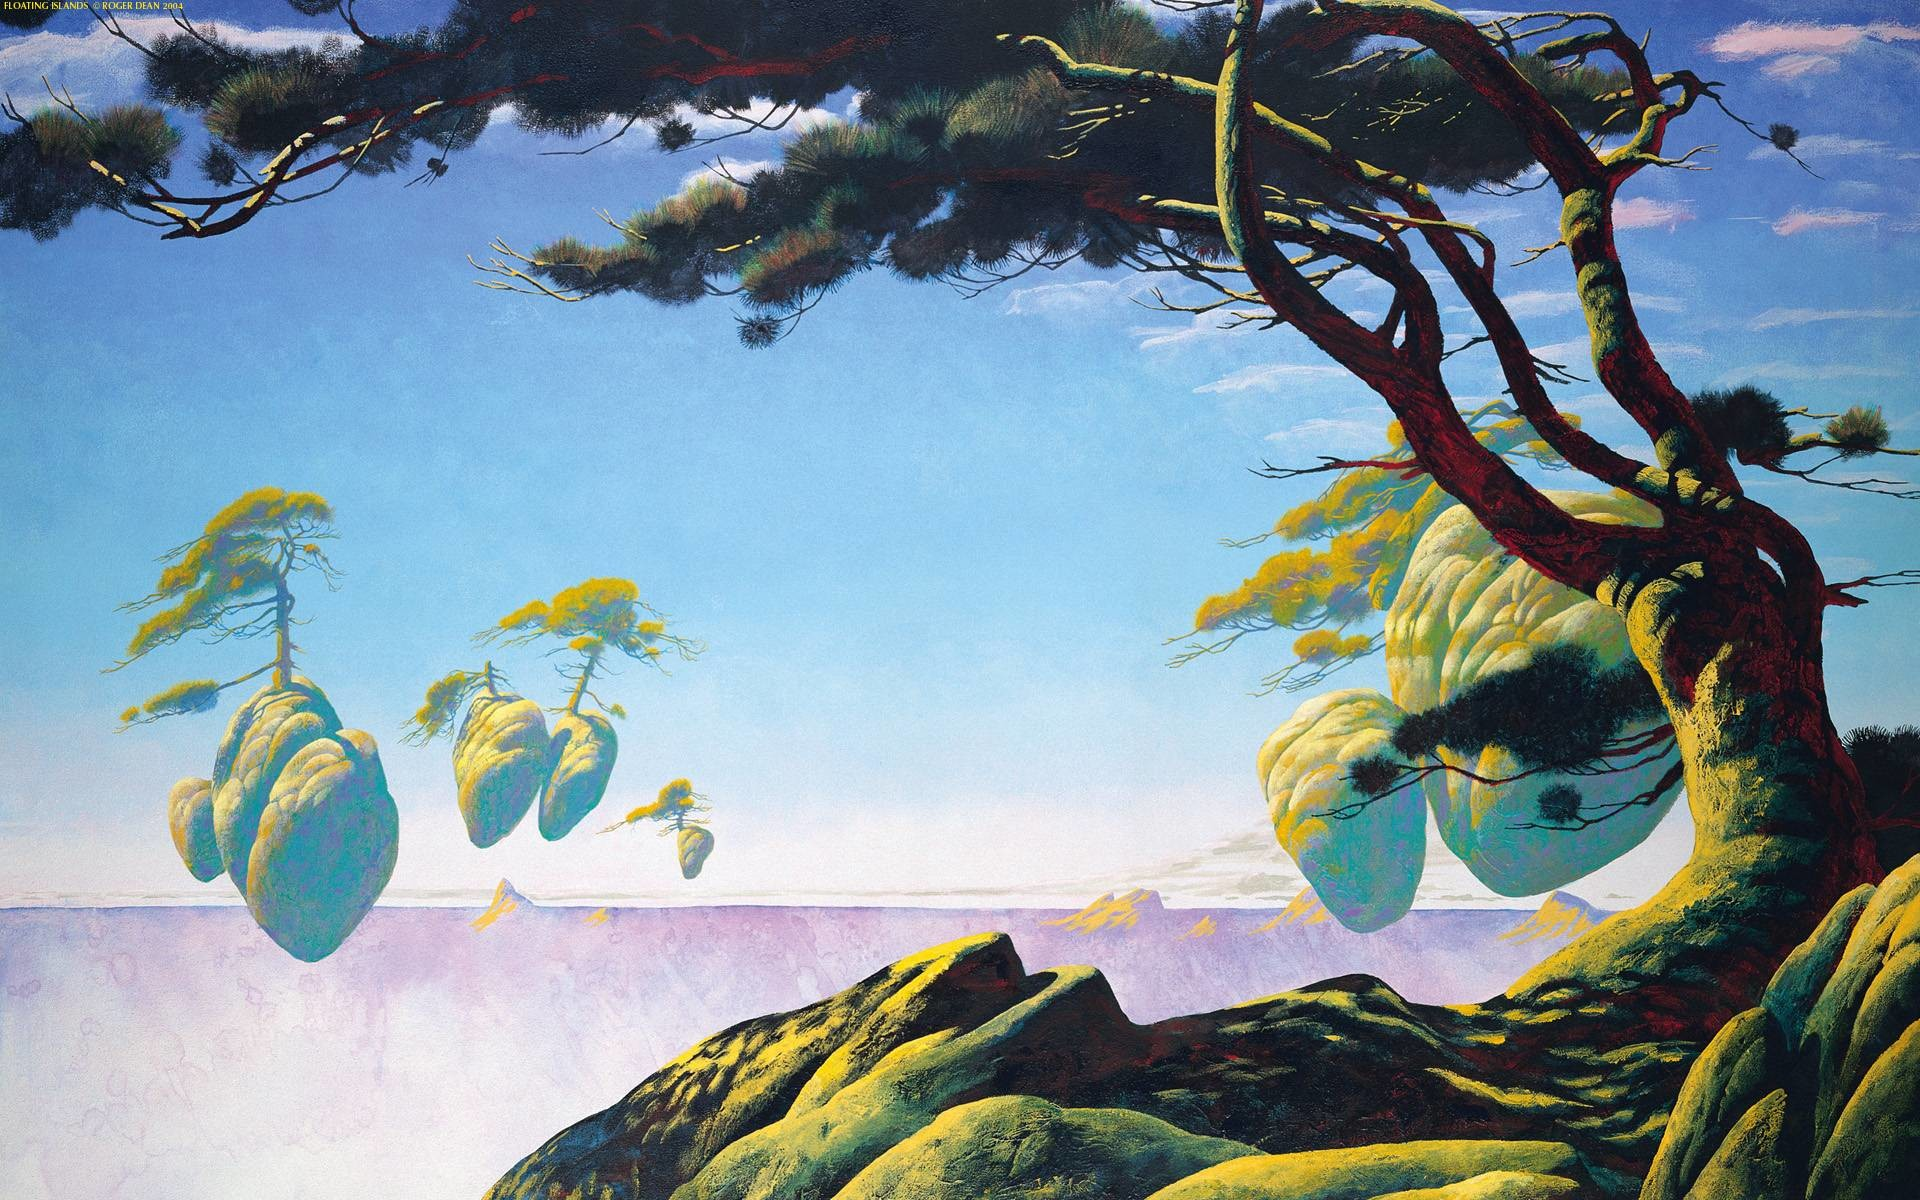 1920x1200 Roger Dean Avatar Wallpaper PX ~ Wallpaper Roger Dean #58892